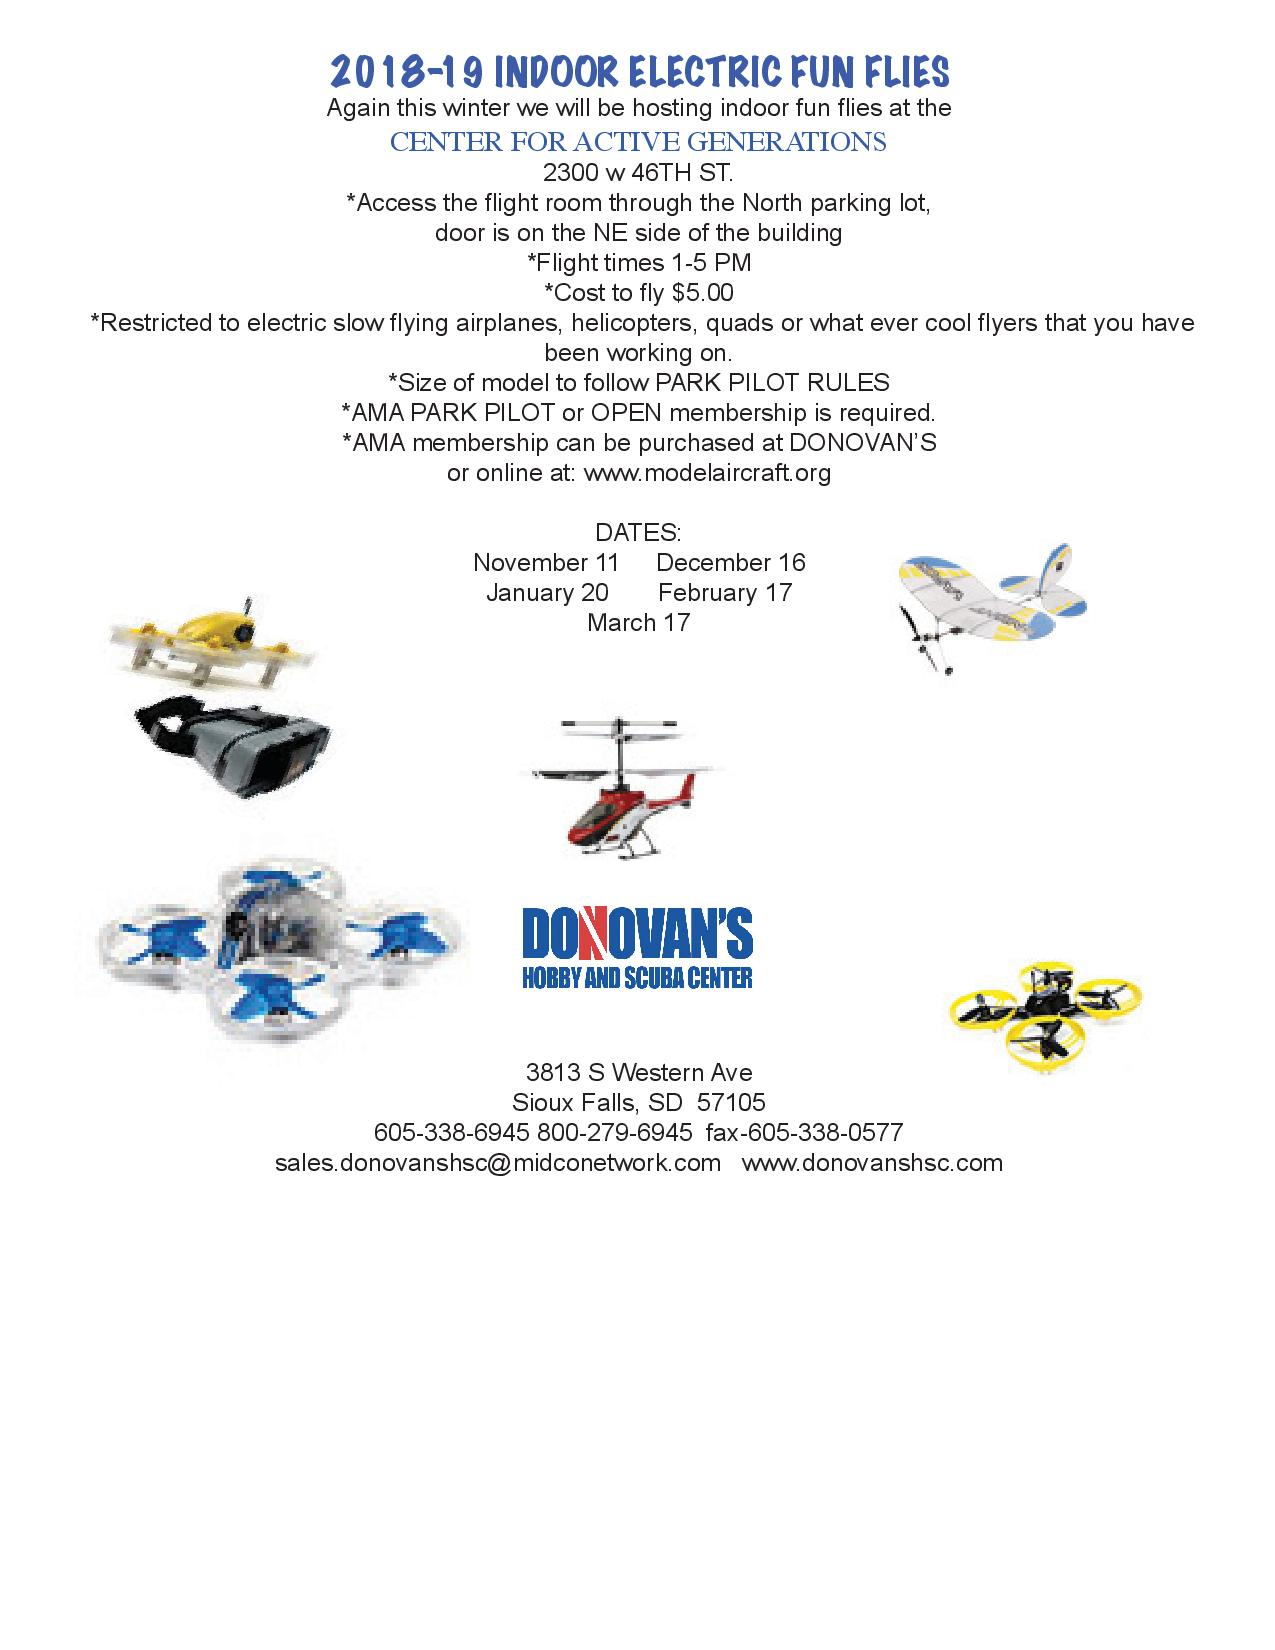 2018-19 Indoor Fun Fly Schedule